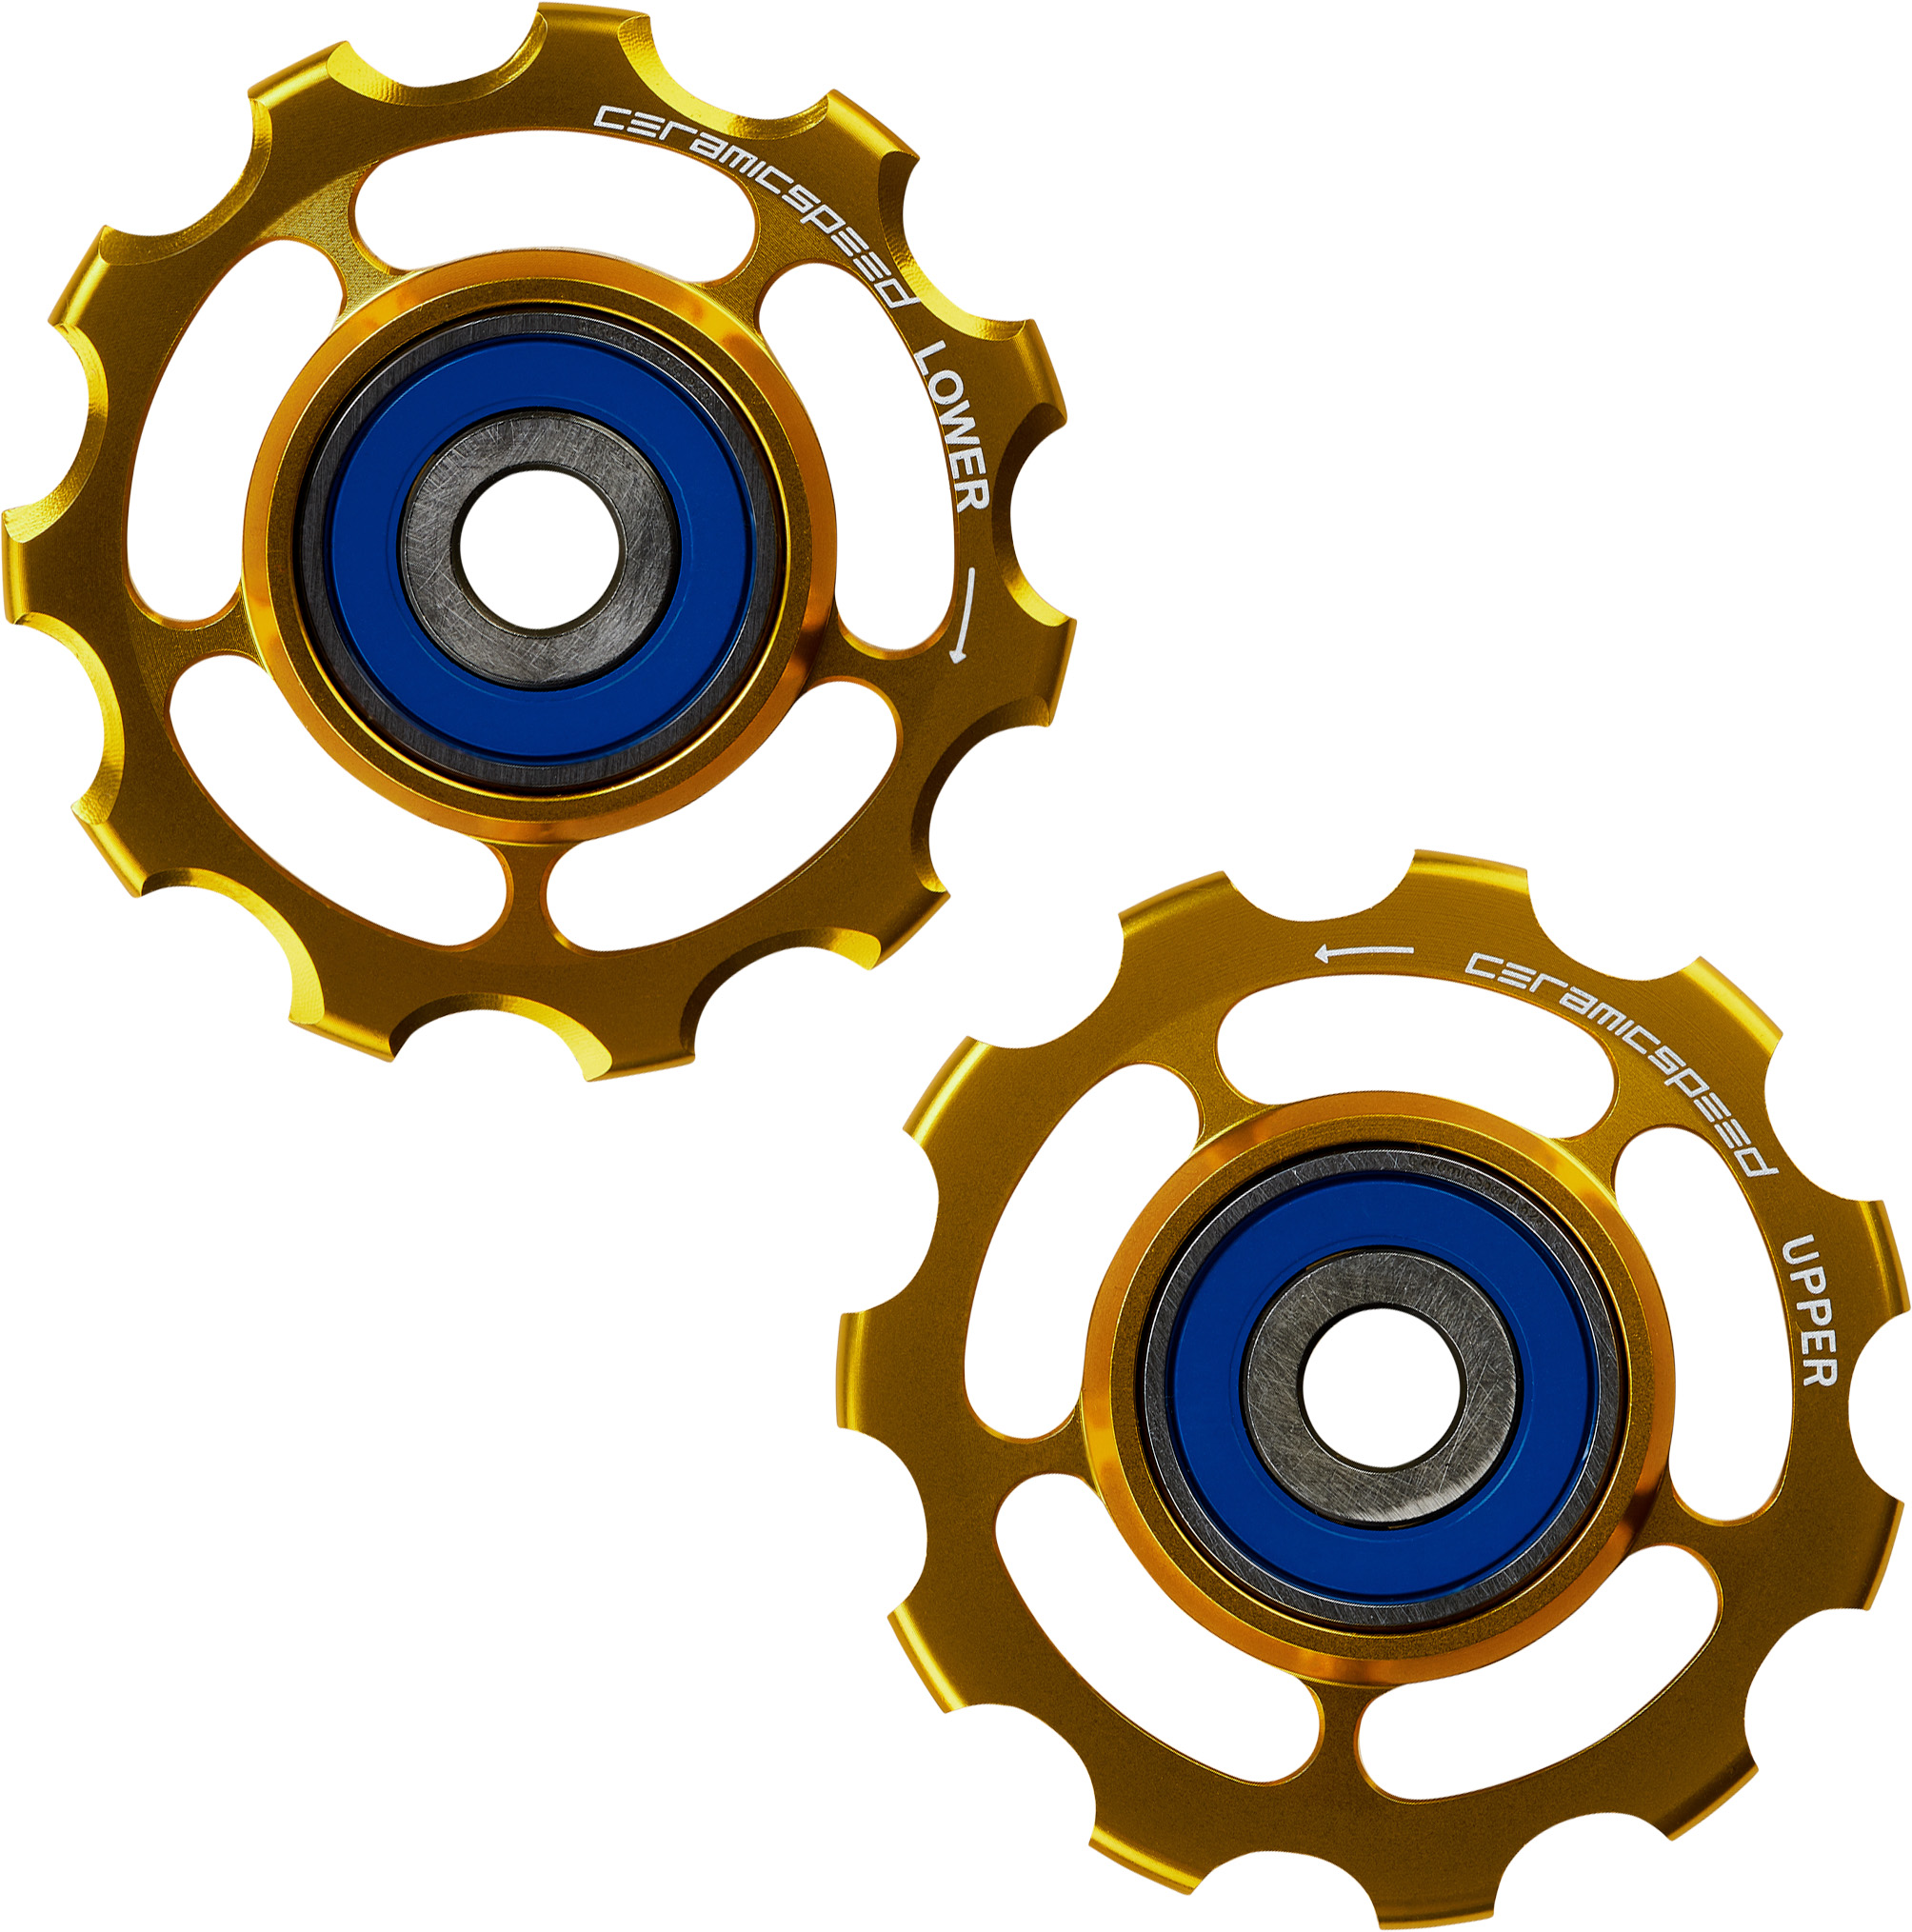 CeramicSpeed Oversized Pulley Wheels-SRAM | Pulleyhjul